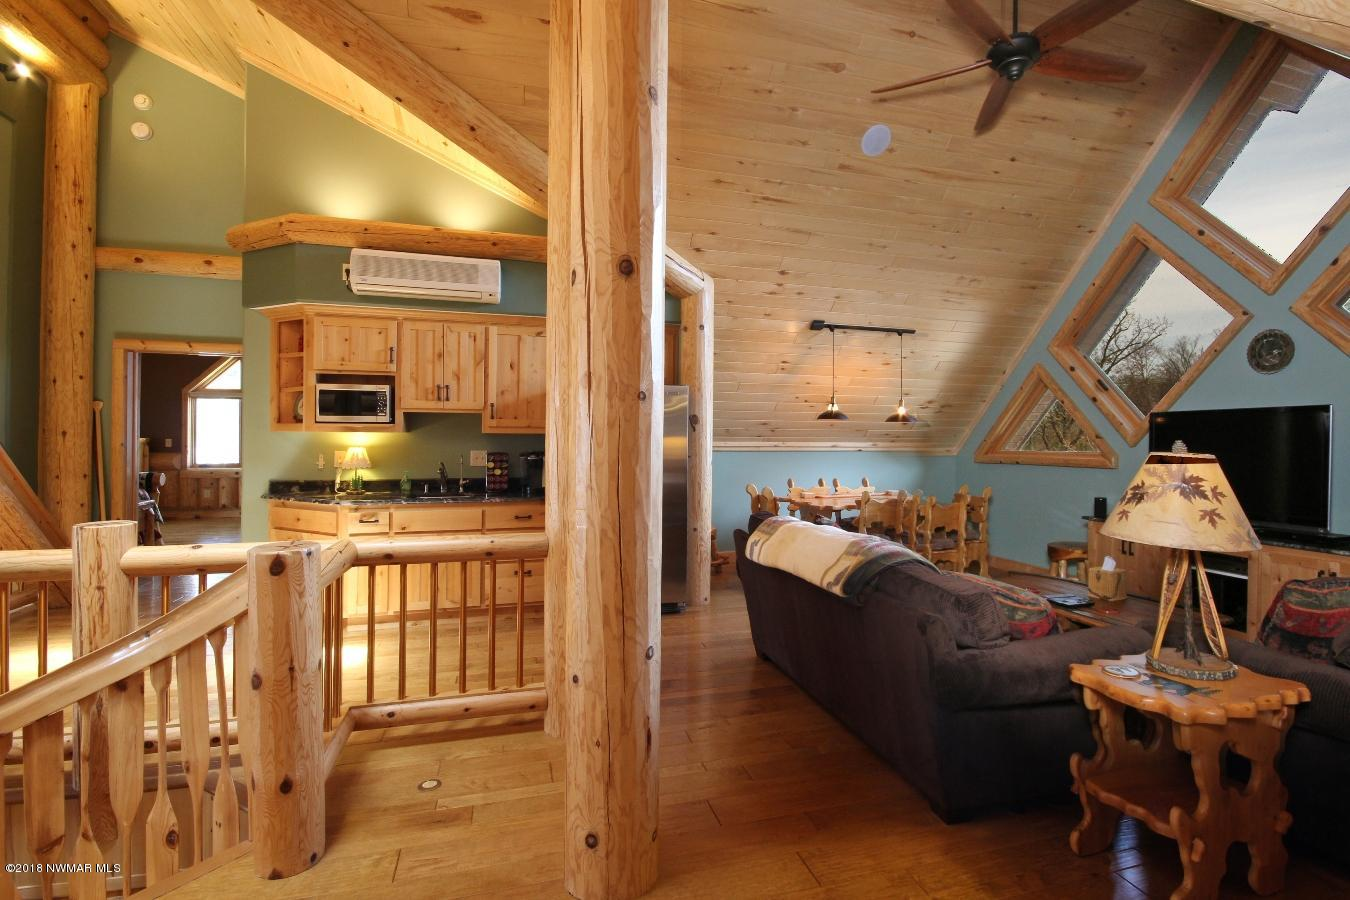 Ceilings are tongue and groove Aspen. All interior doors and cabinets are knotty alder.